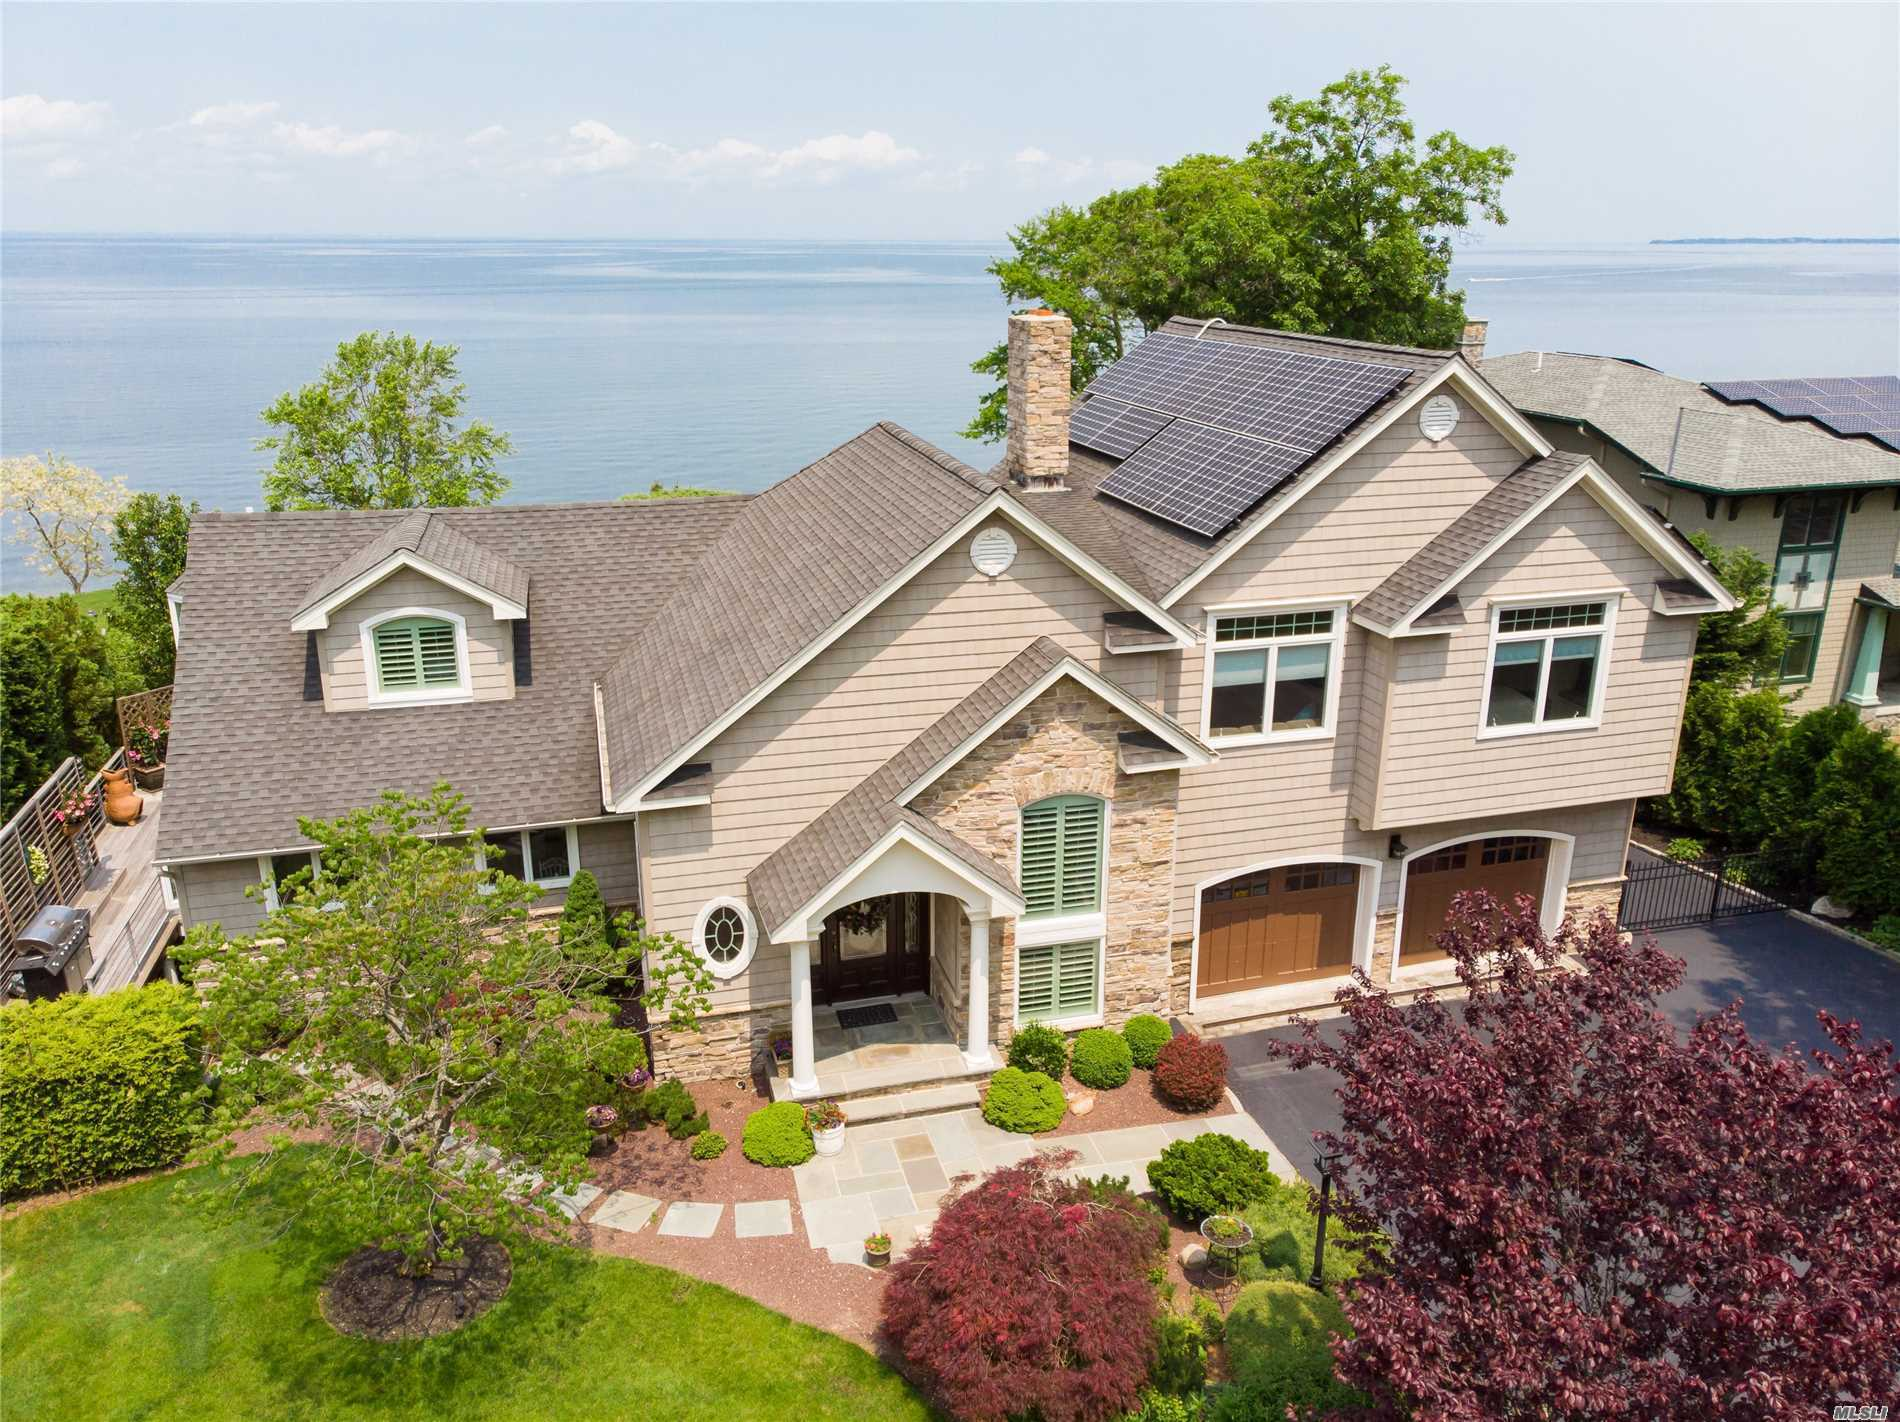 Post modern custom colonial with 3 levels of unobstructed view of the long Island sound.built with highest quality material and tasteful design to take advantage of the fabulous location, lush lawn, Ipe wood wraparound deck, back porch gazing at the water, complete privacy on both sides of the property created by tall specimen trees, stairs down to the sandy beach.. A two story foyer leads you to a great room/ open concept & view of the water from every corner.